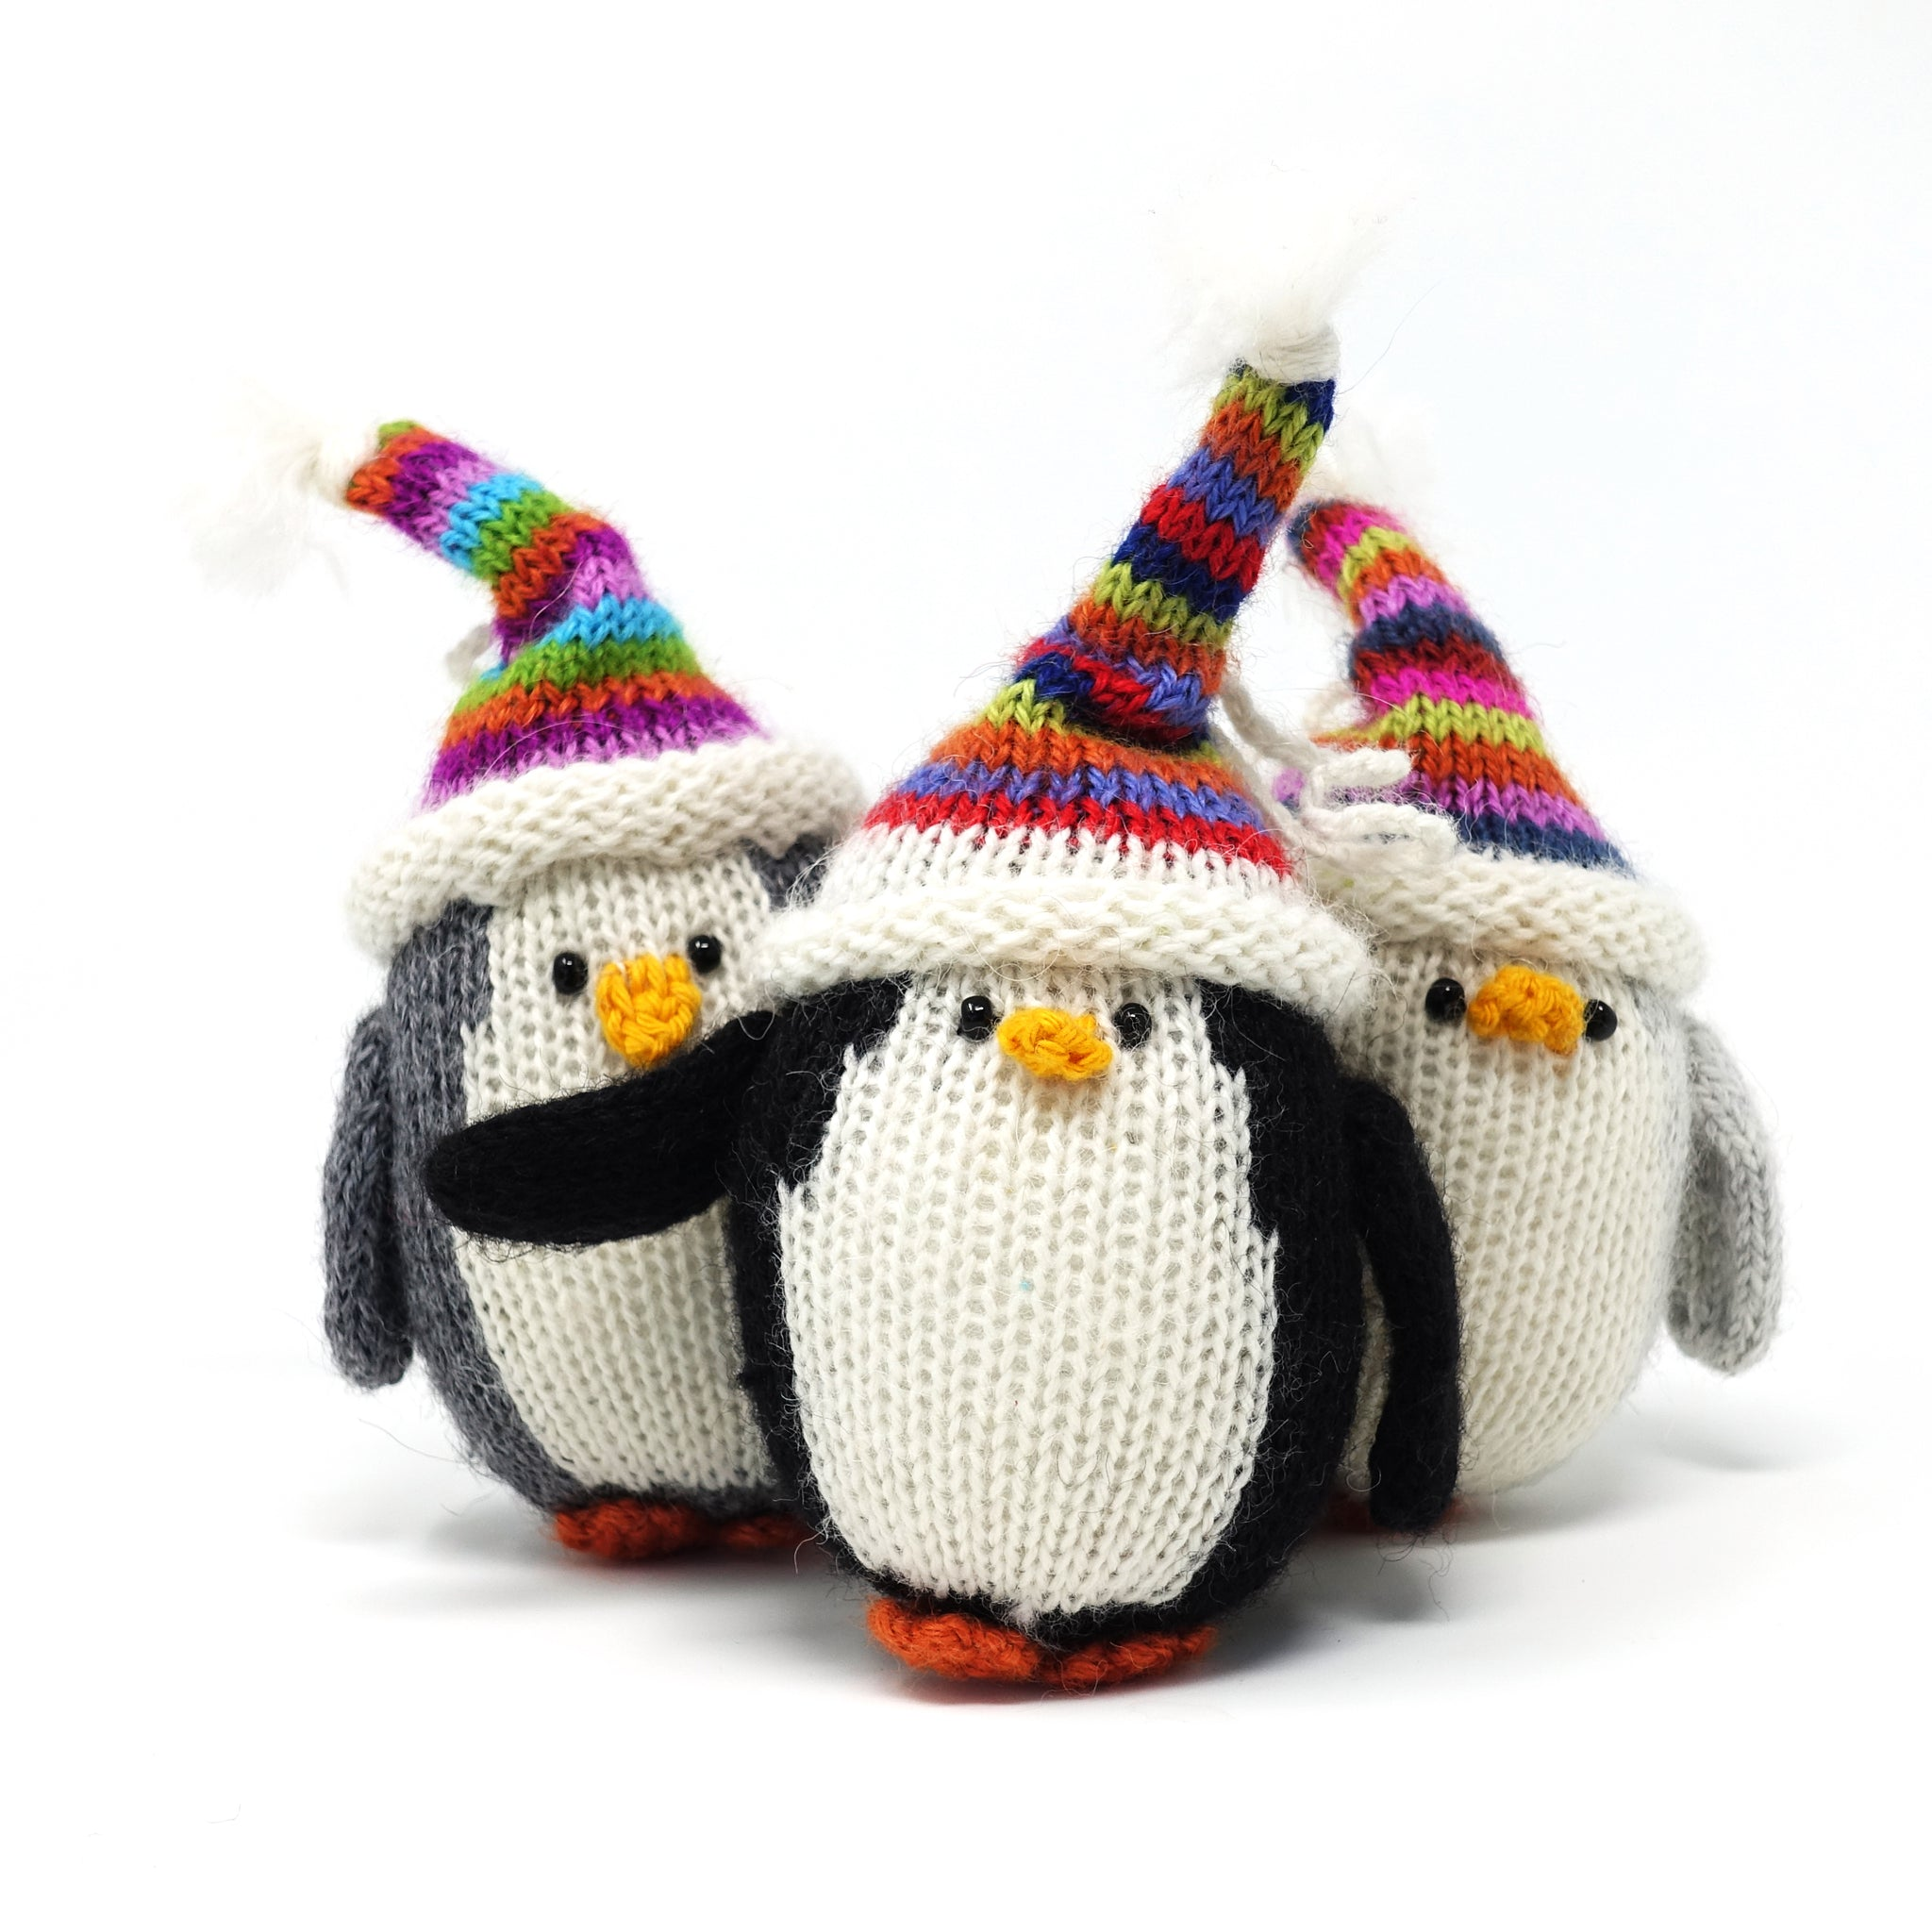 Penguin with Multi-Colored Hat Ornament- set of 3